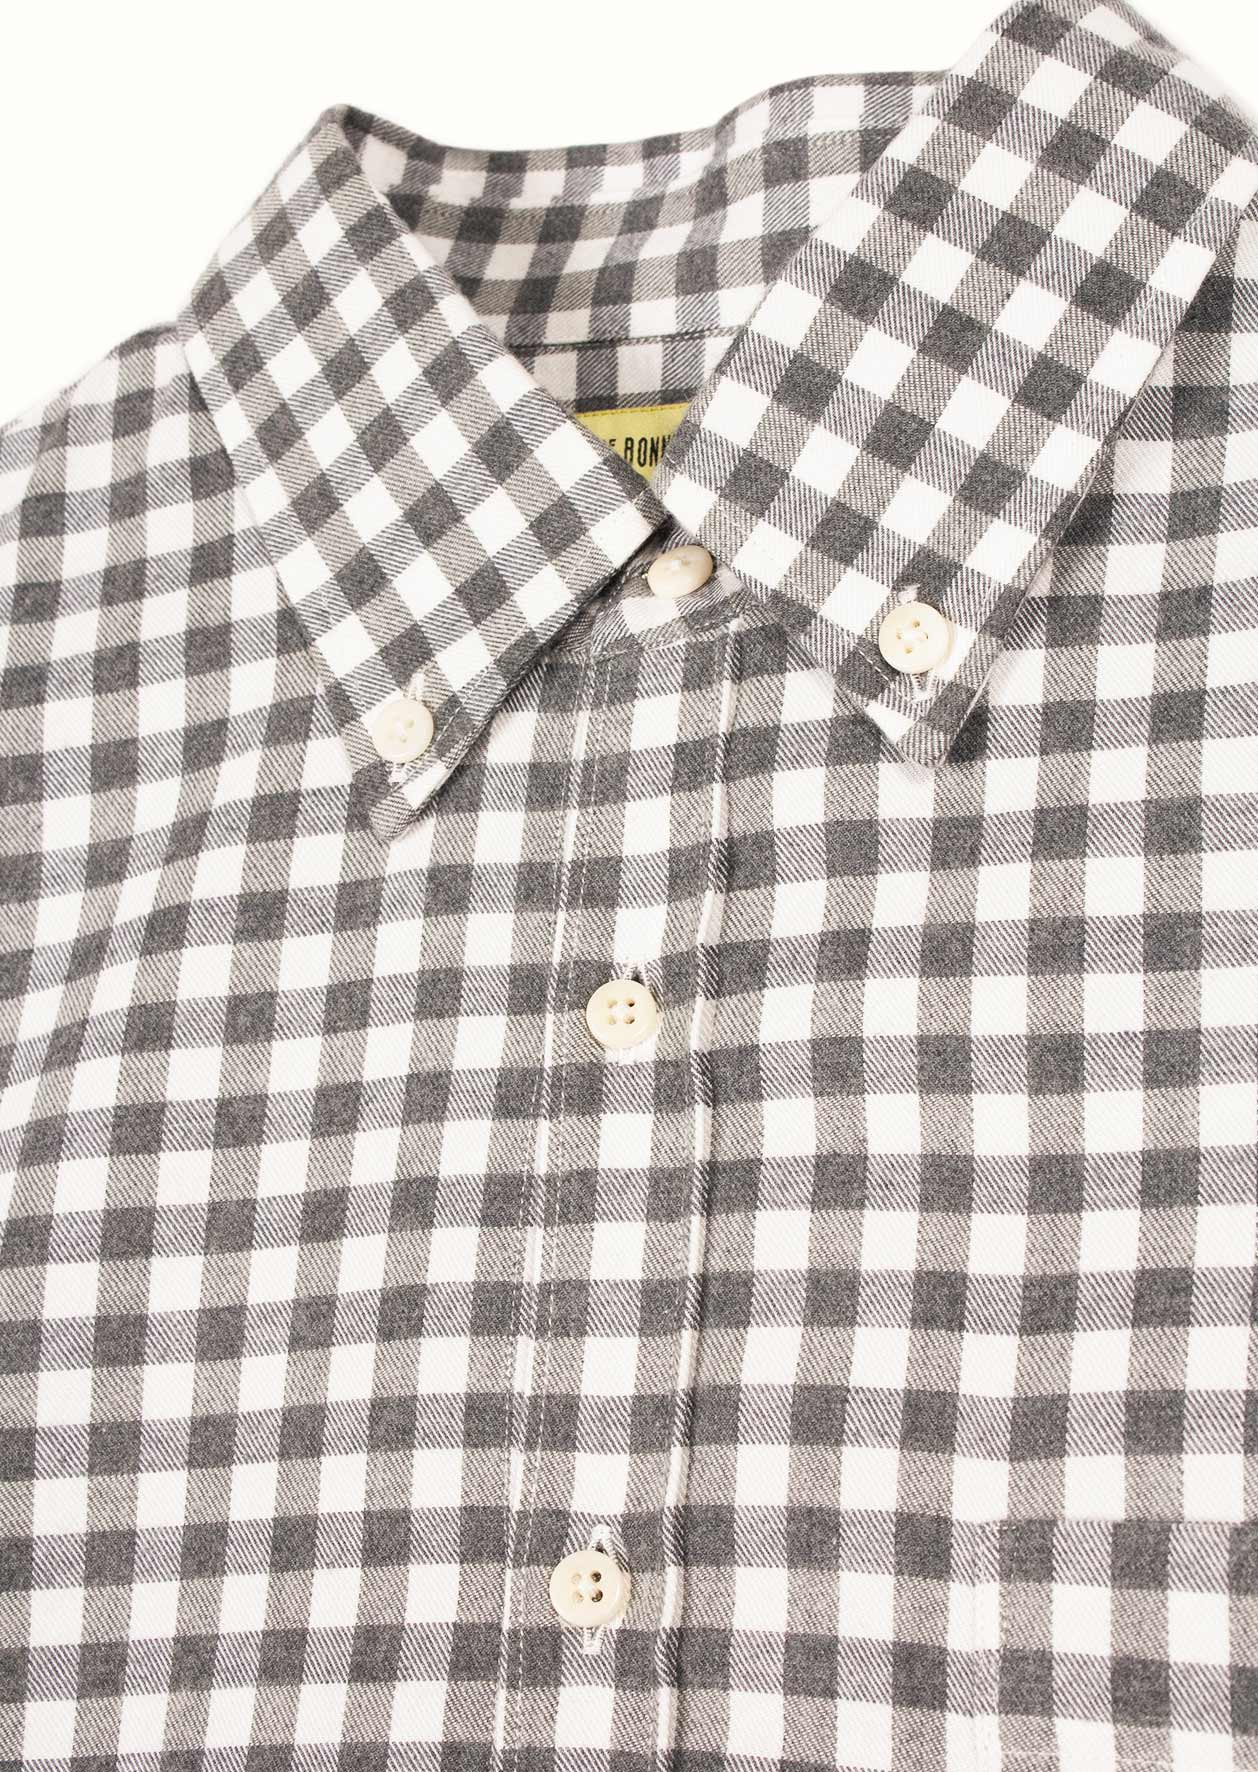 Buttondown shirt - Cotton flannel - Checks